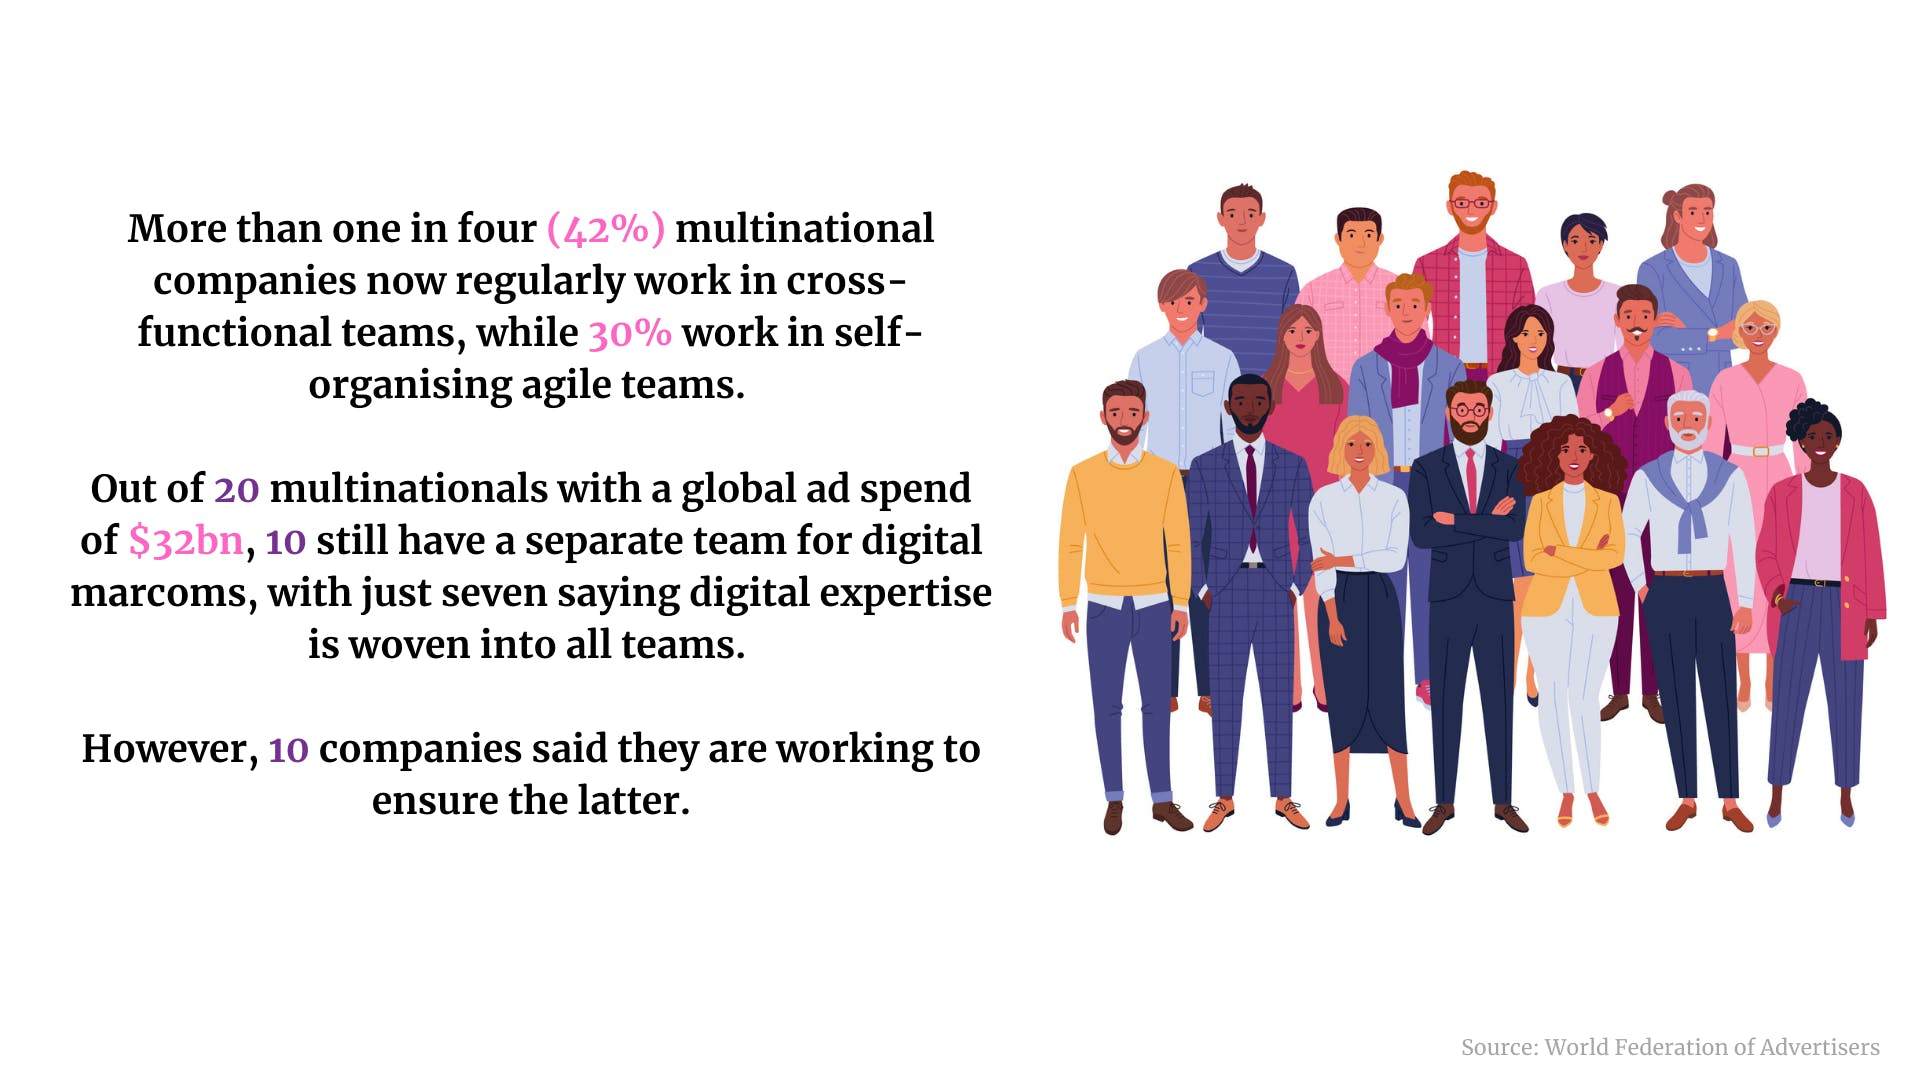 Digital roles, job prospects, consumer trust: 5 killer stats to start your week